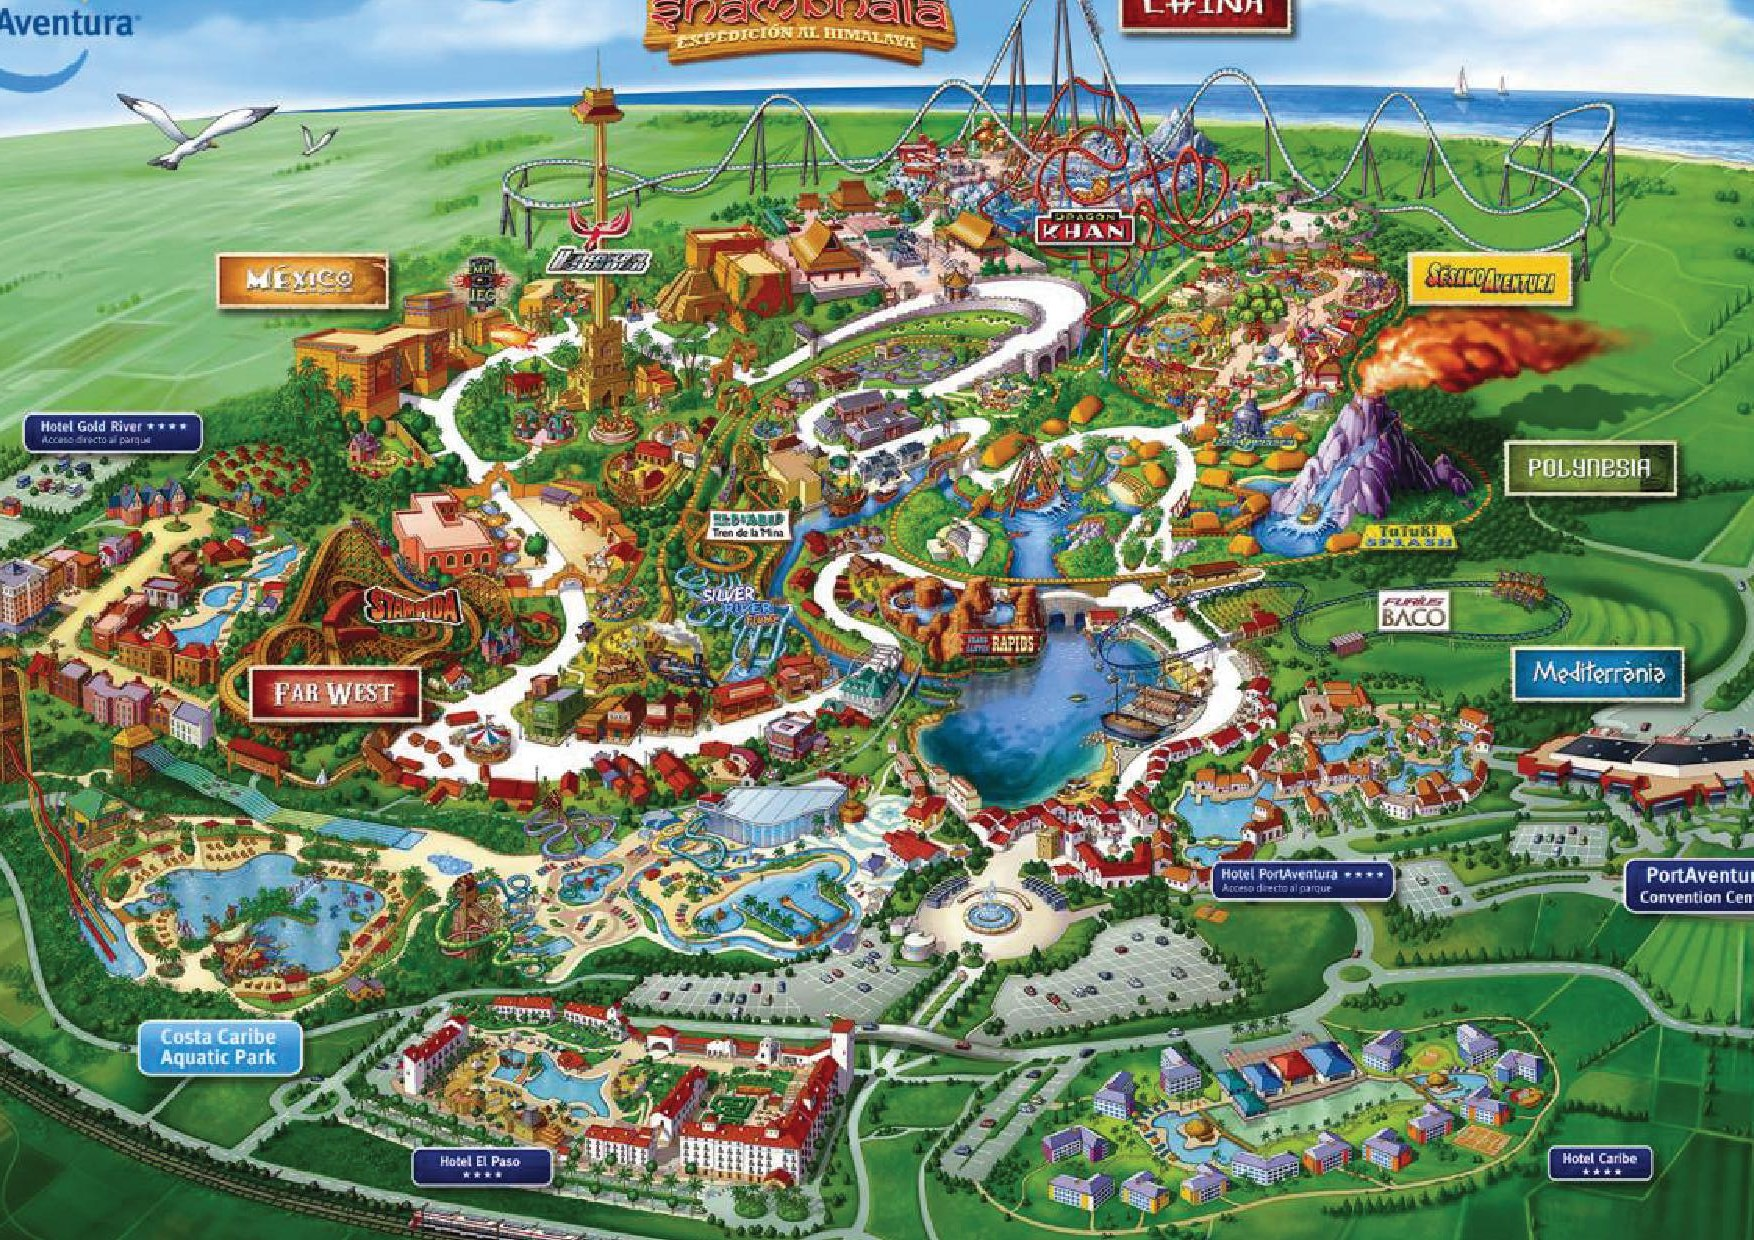 deals hotel tickets in portaventura